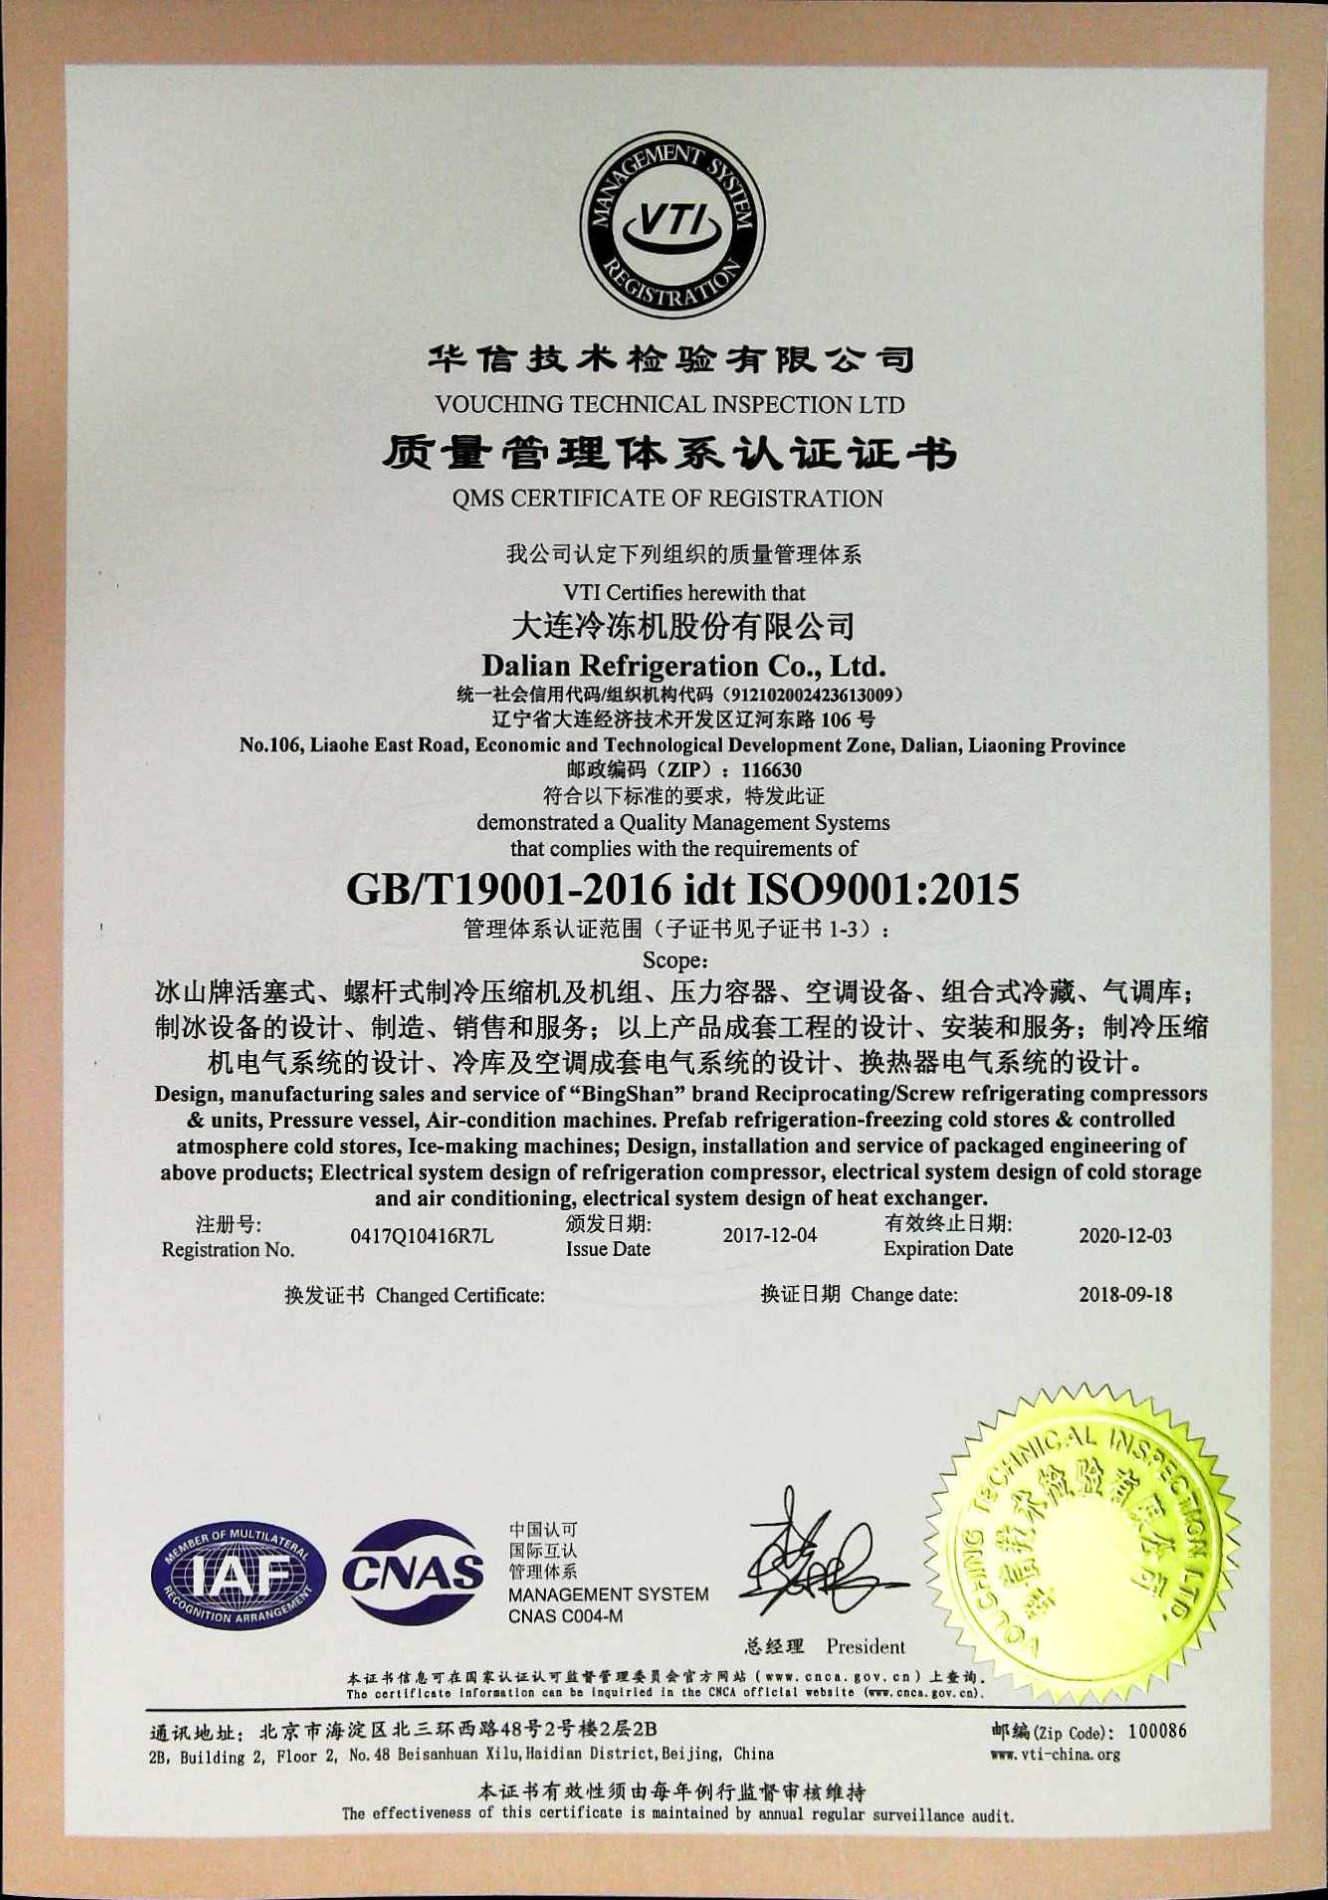 ISO9001 Quality Management Systems CERTIFICATE OF REGISTRATION